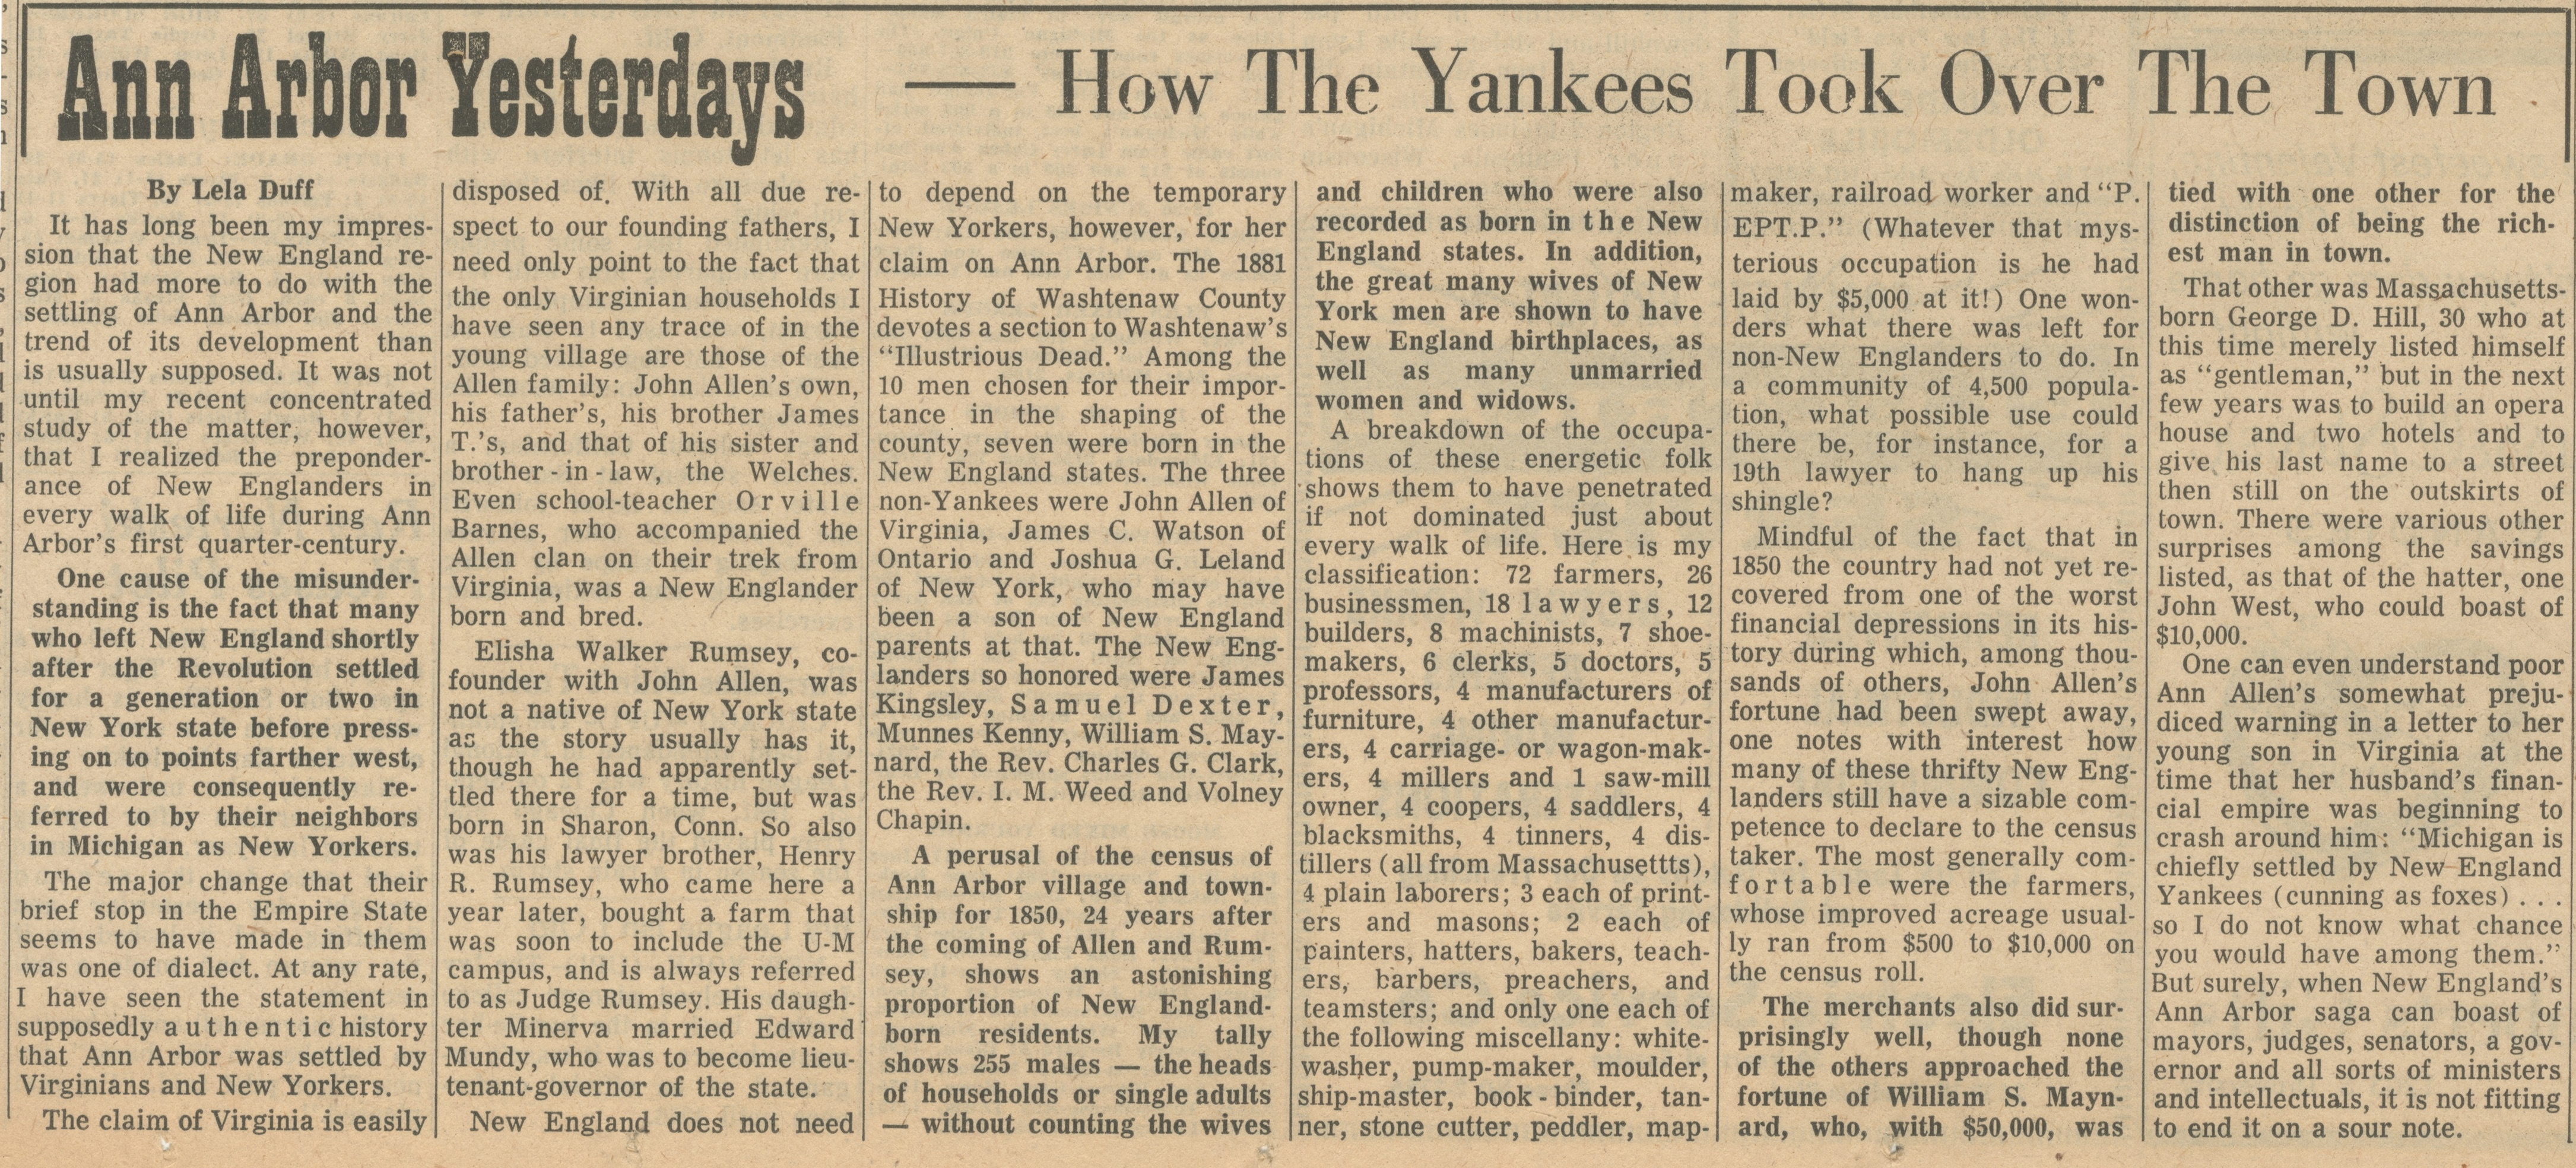 Ann Arbor Yesterdays ~ How The Yankees Took Over The Town image